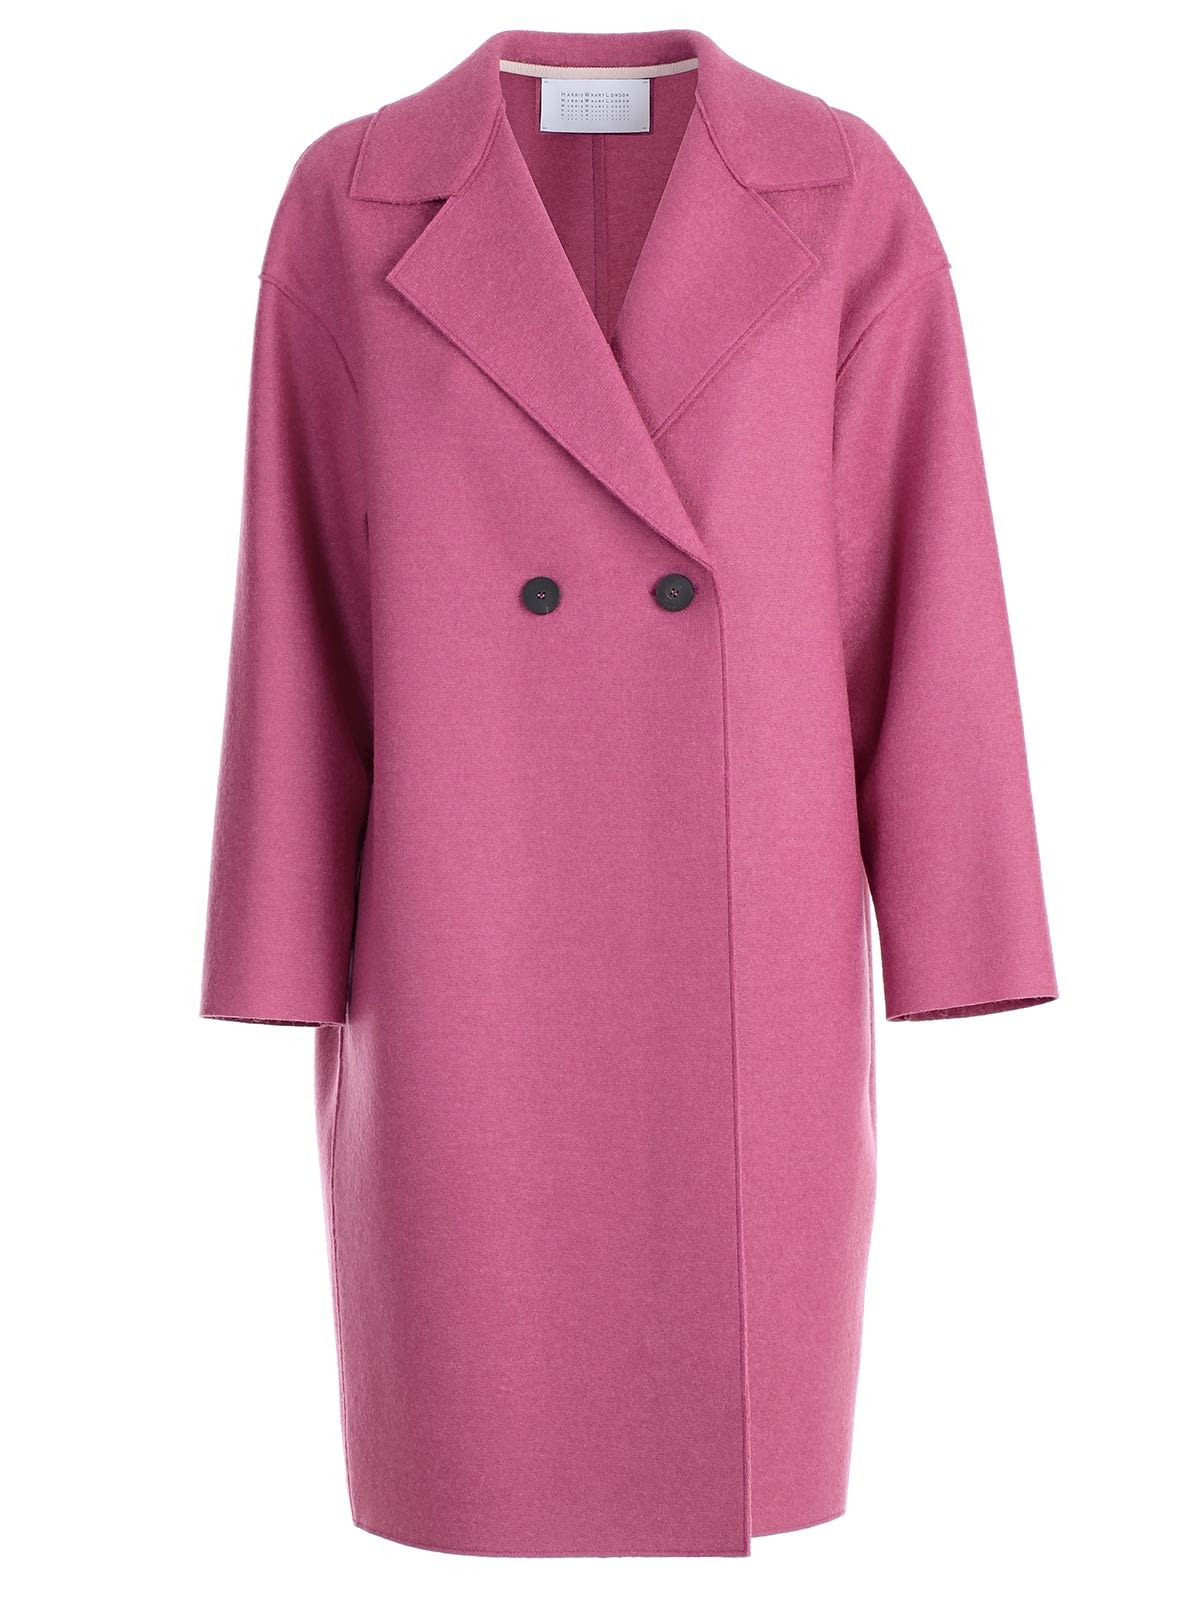 HARRIS WHARF LONDON TWO BUTTON DOUBLE BREASTED COAT